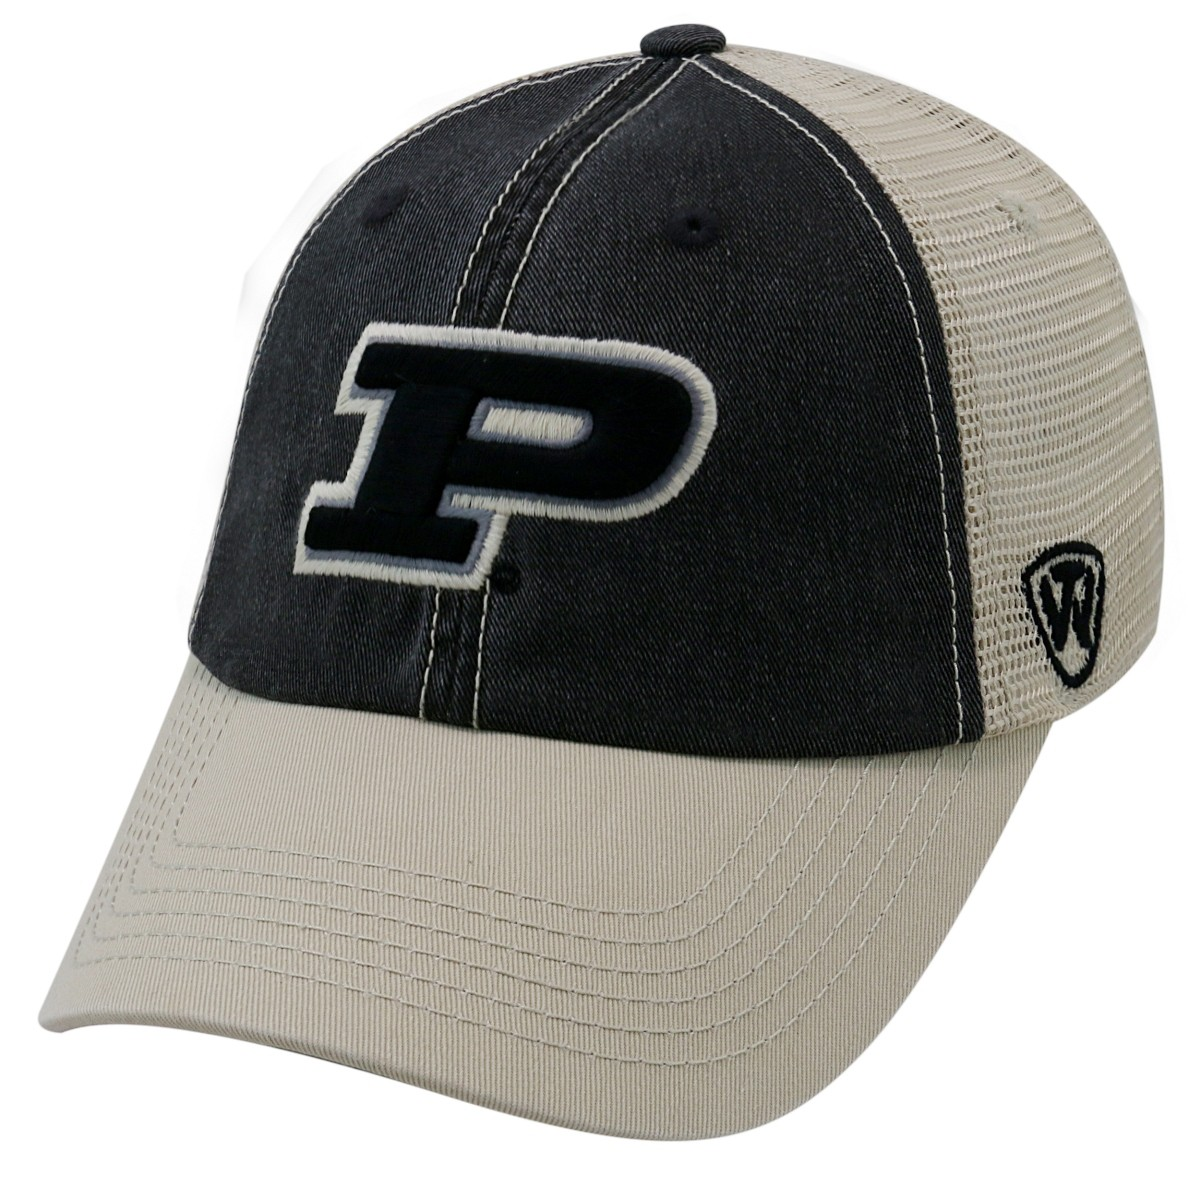 free shipping abc44 5b122 ... cheapest details about purdue boilermakers ncaa top of the world off  road adjustable mesh back hat